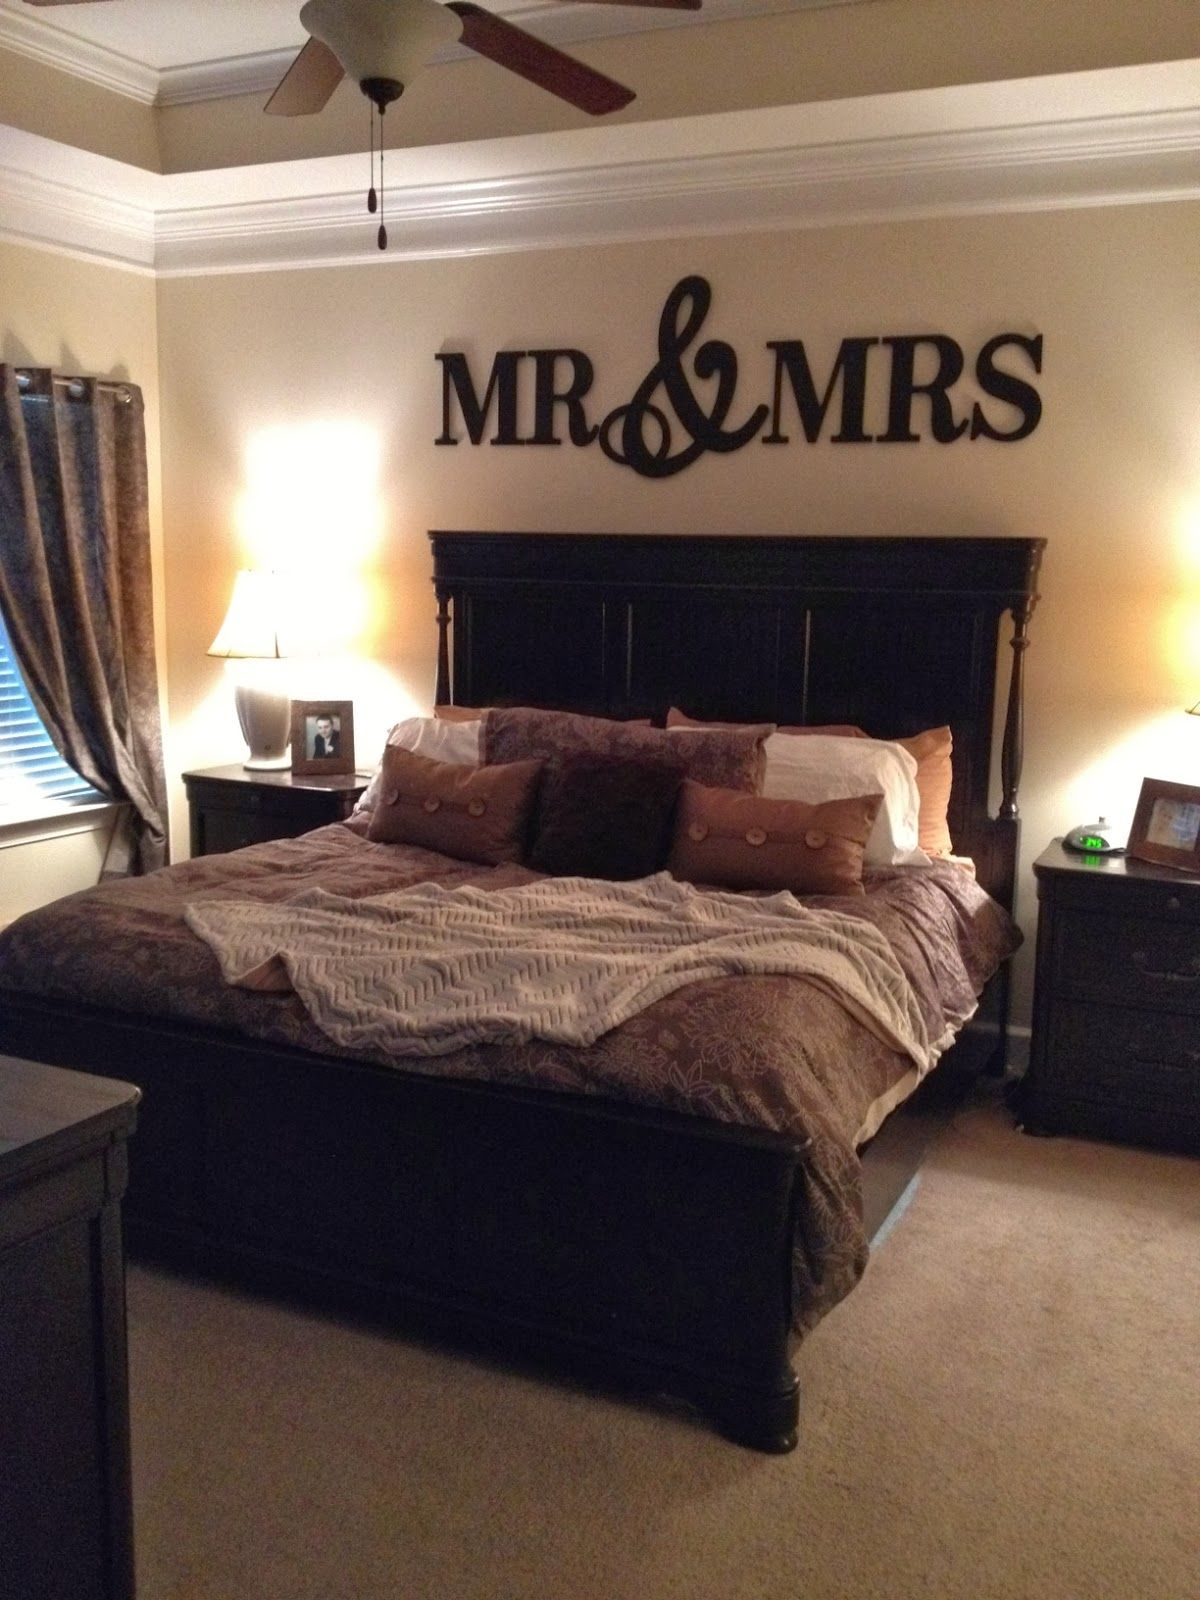 New Bedroom Designs mr & mrs wood letters, wall décor-painted wood letters, wall